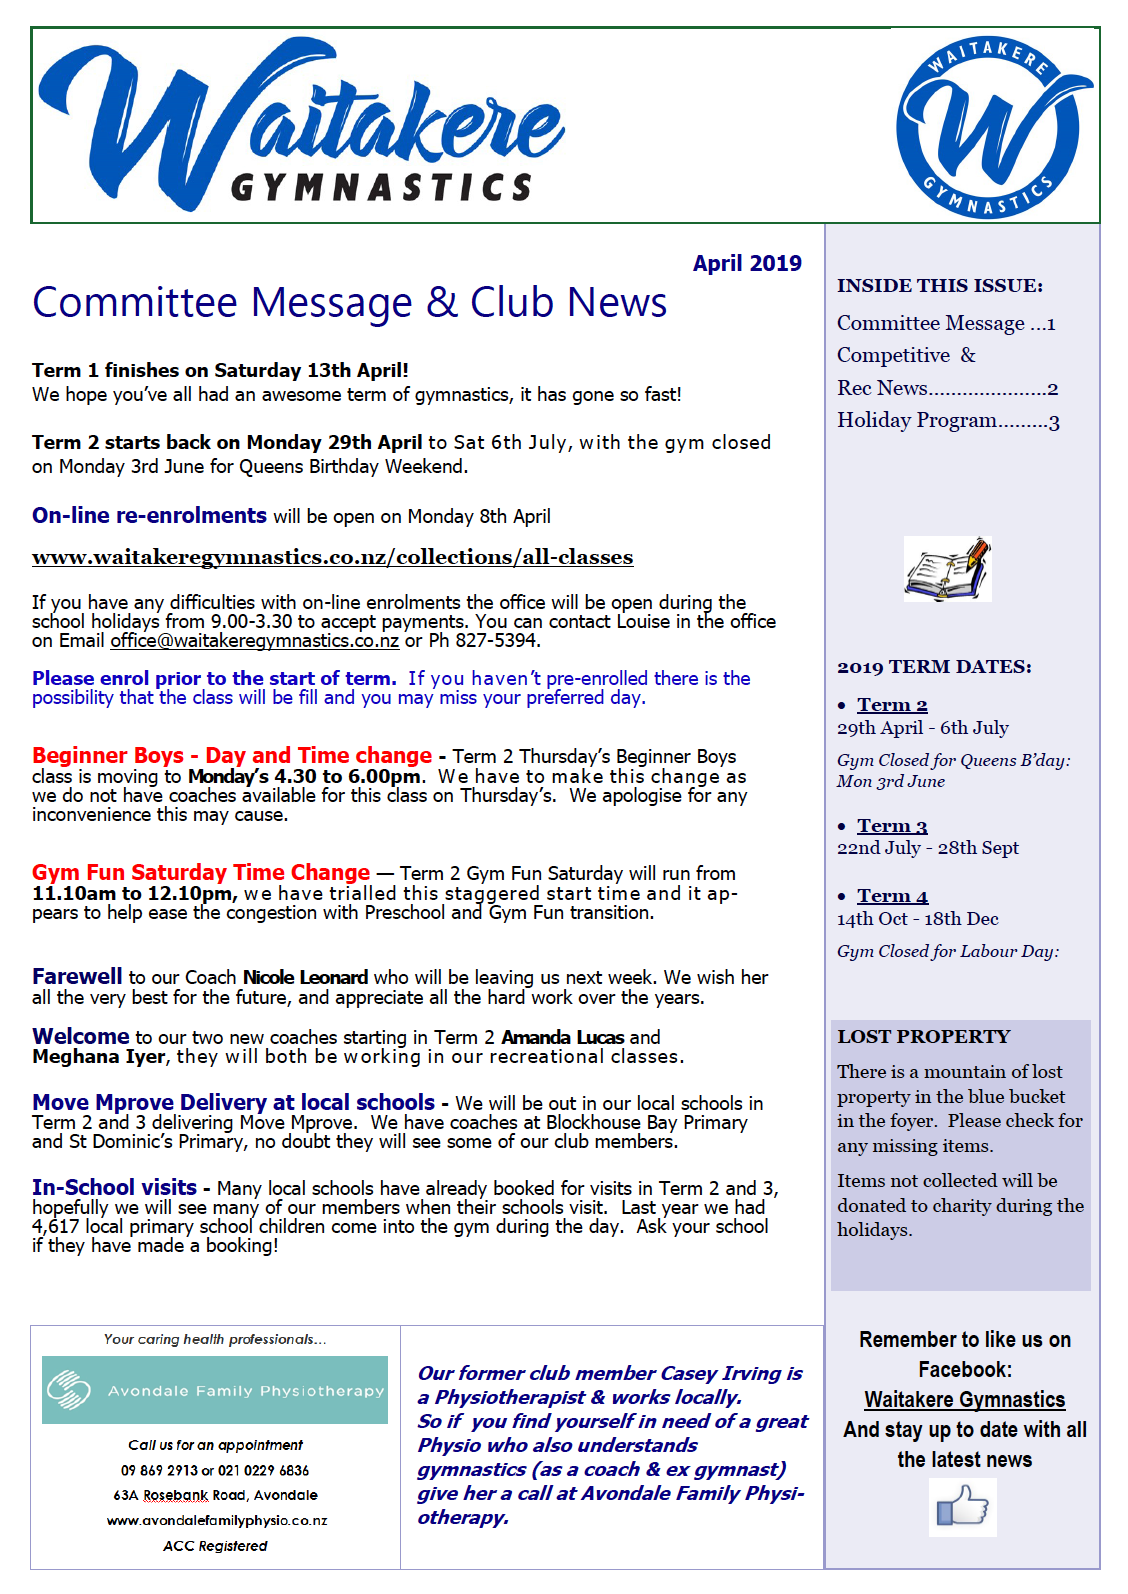 April 2019 Club Newsletter